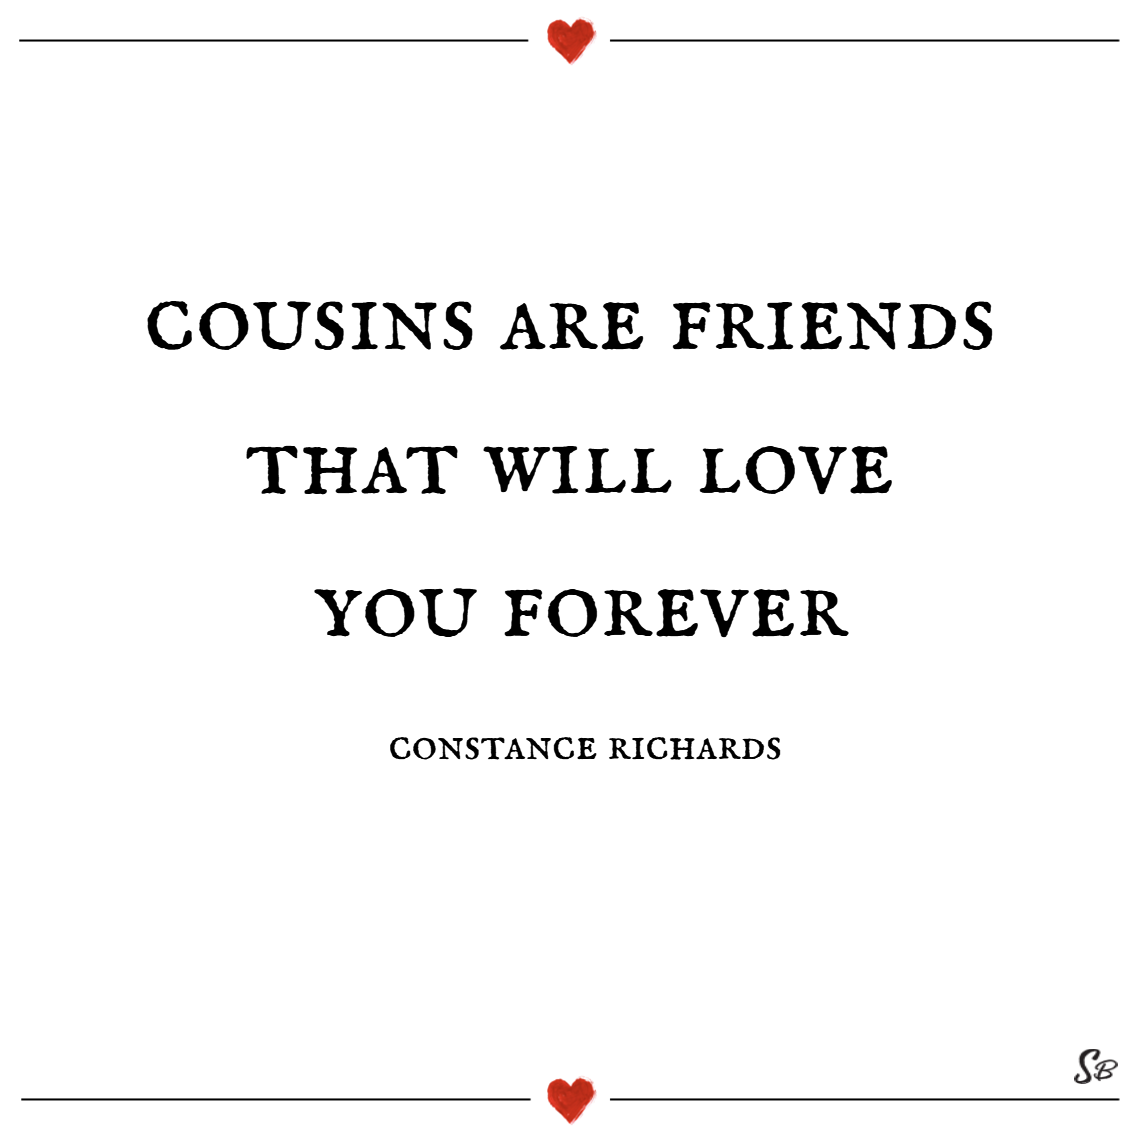 Cousins are friends that will love you forever. – constance richards cousins quotes